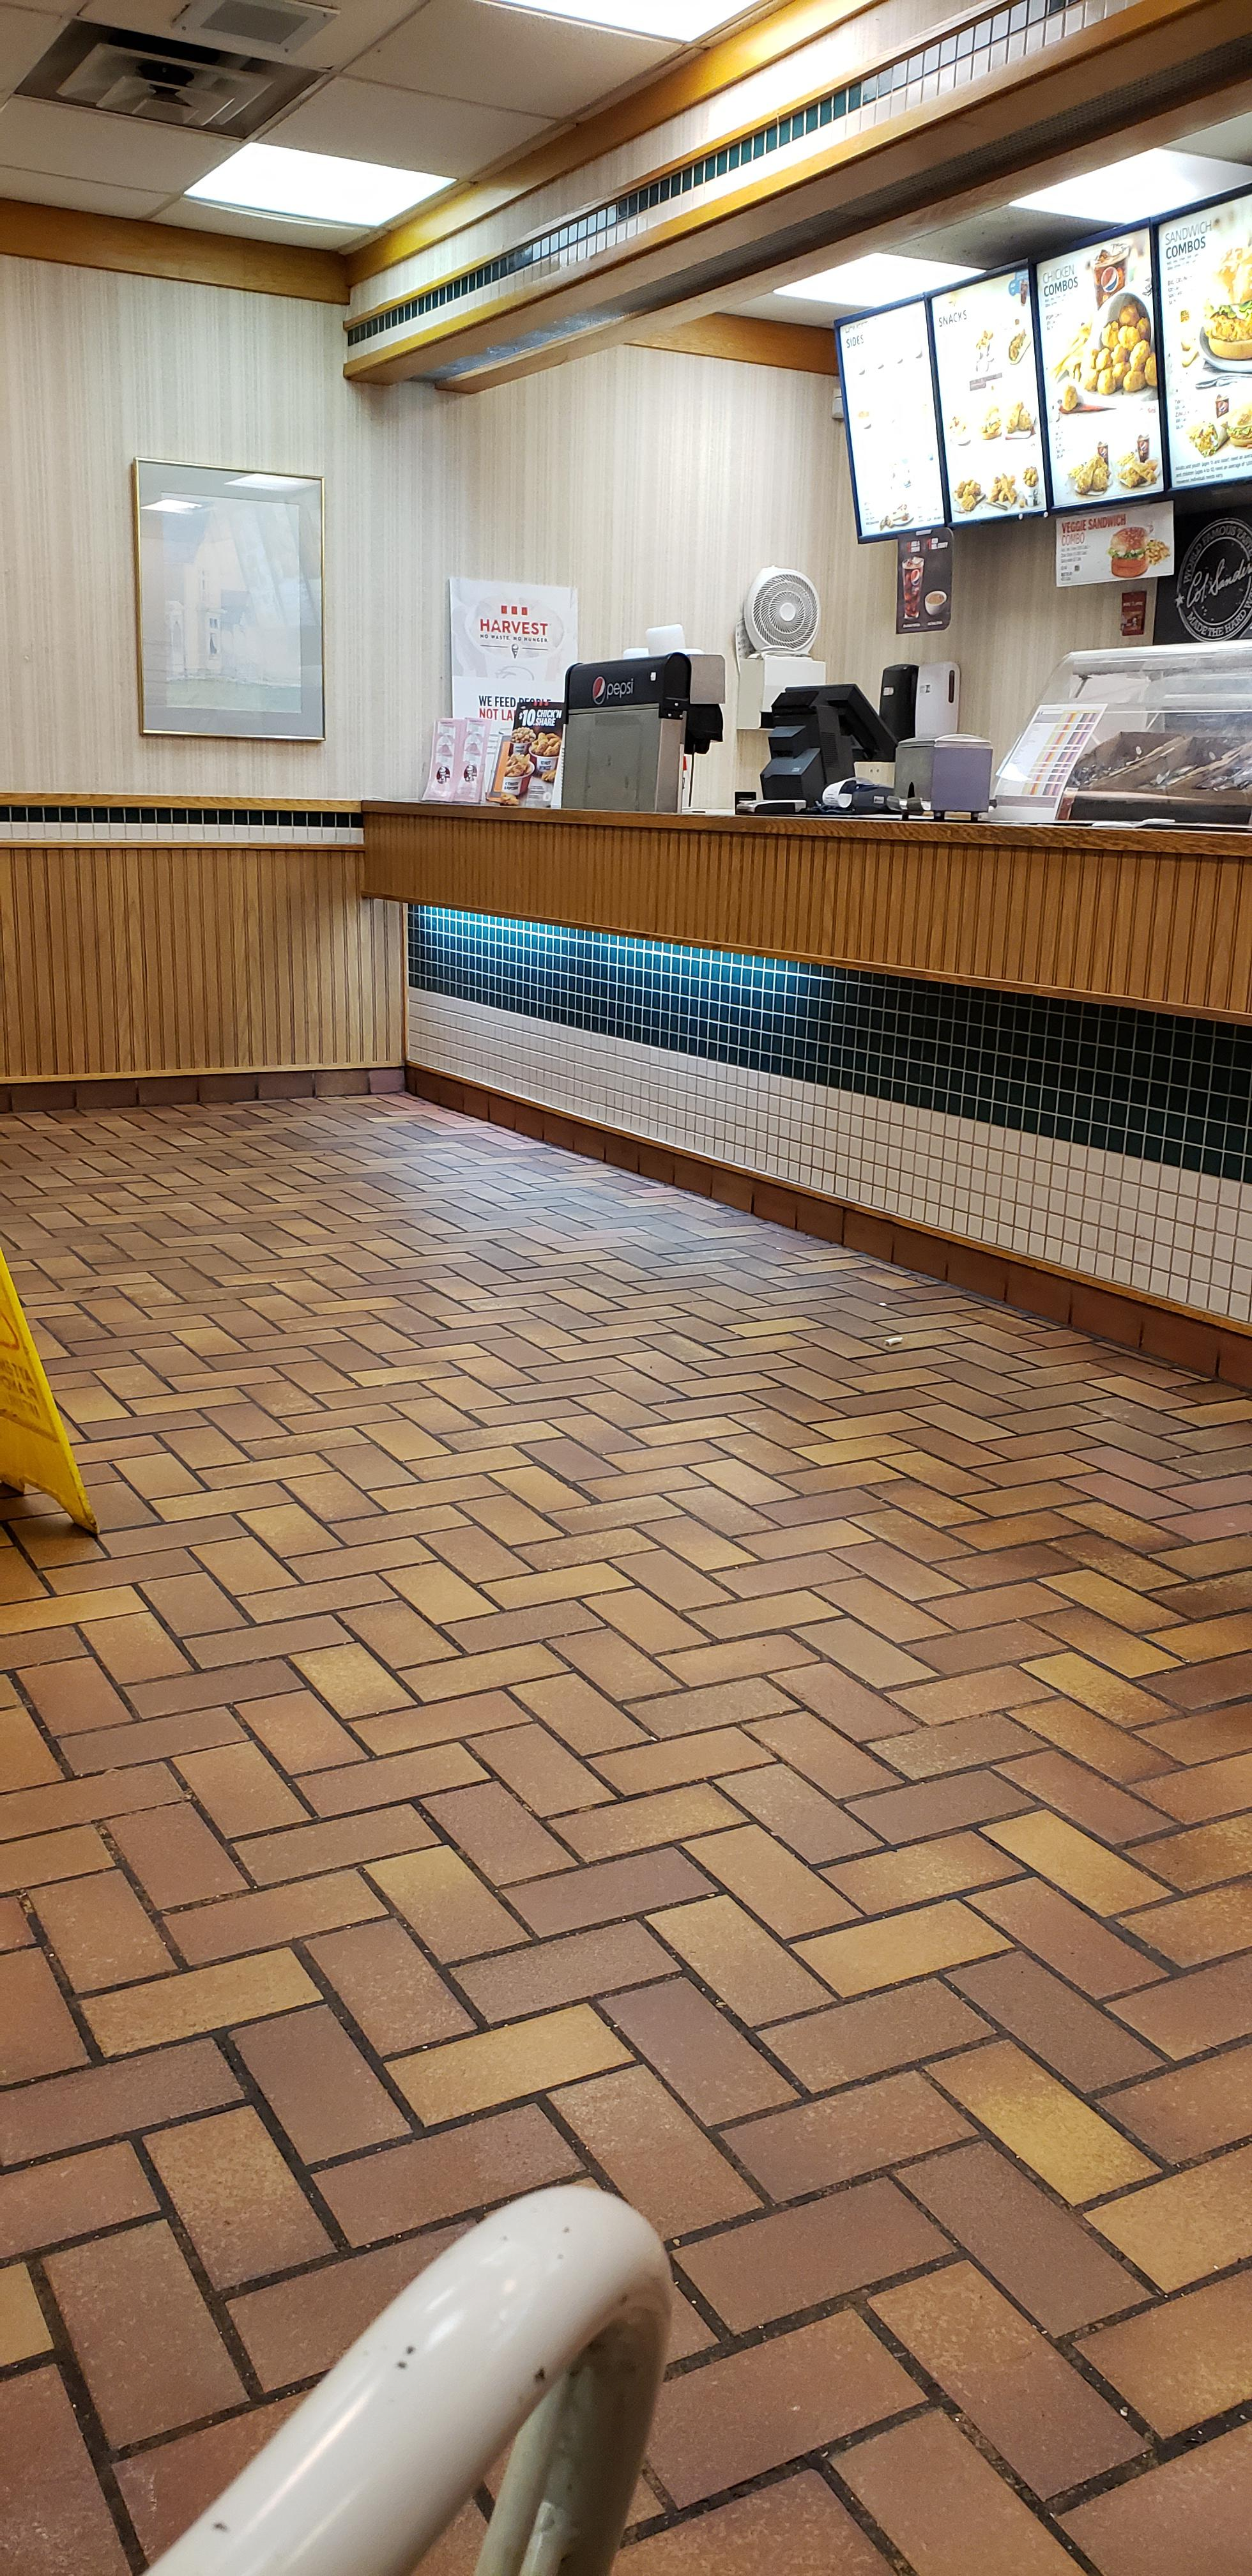 My Local KFC hasn't changed since the 80's